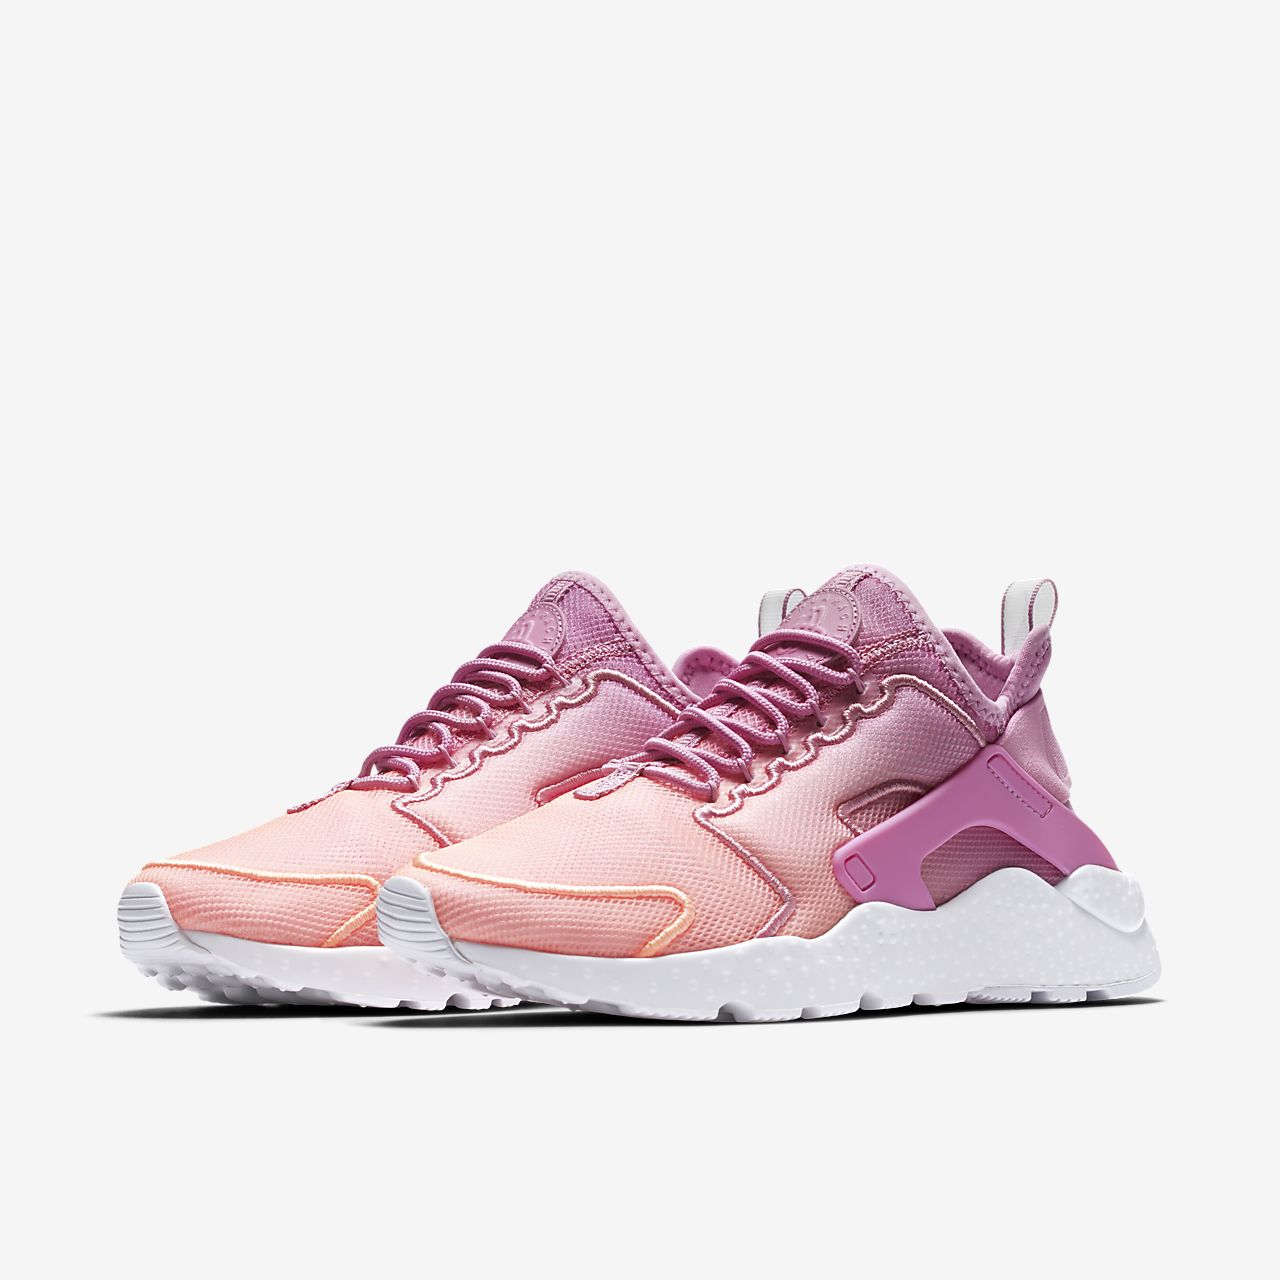 Nike Air Huarache Ultra Breathe Orchid Sunset Glow White Orchid 833292501